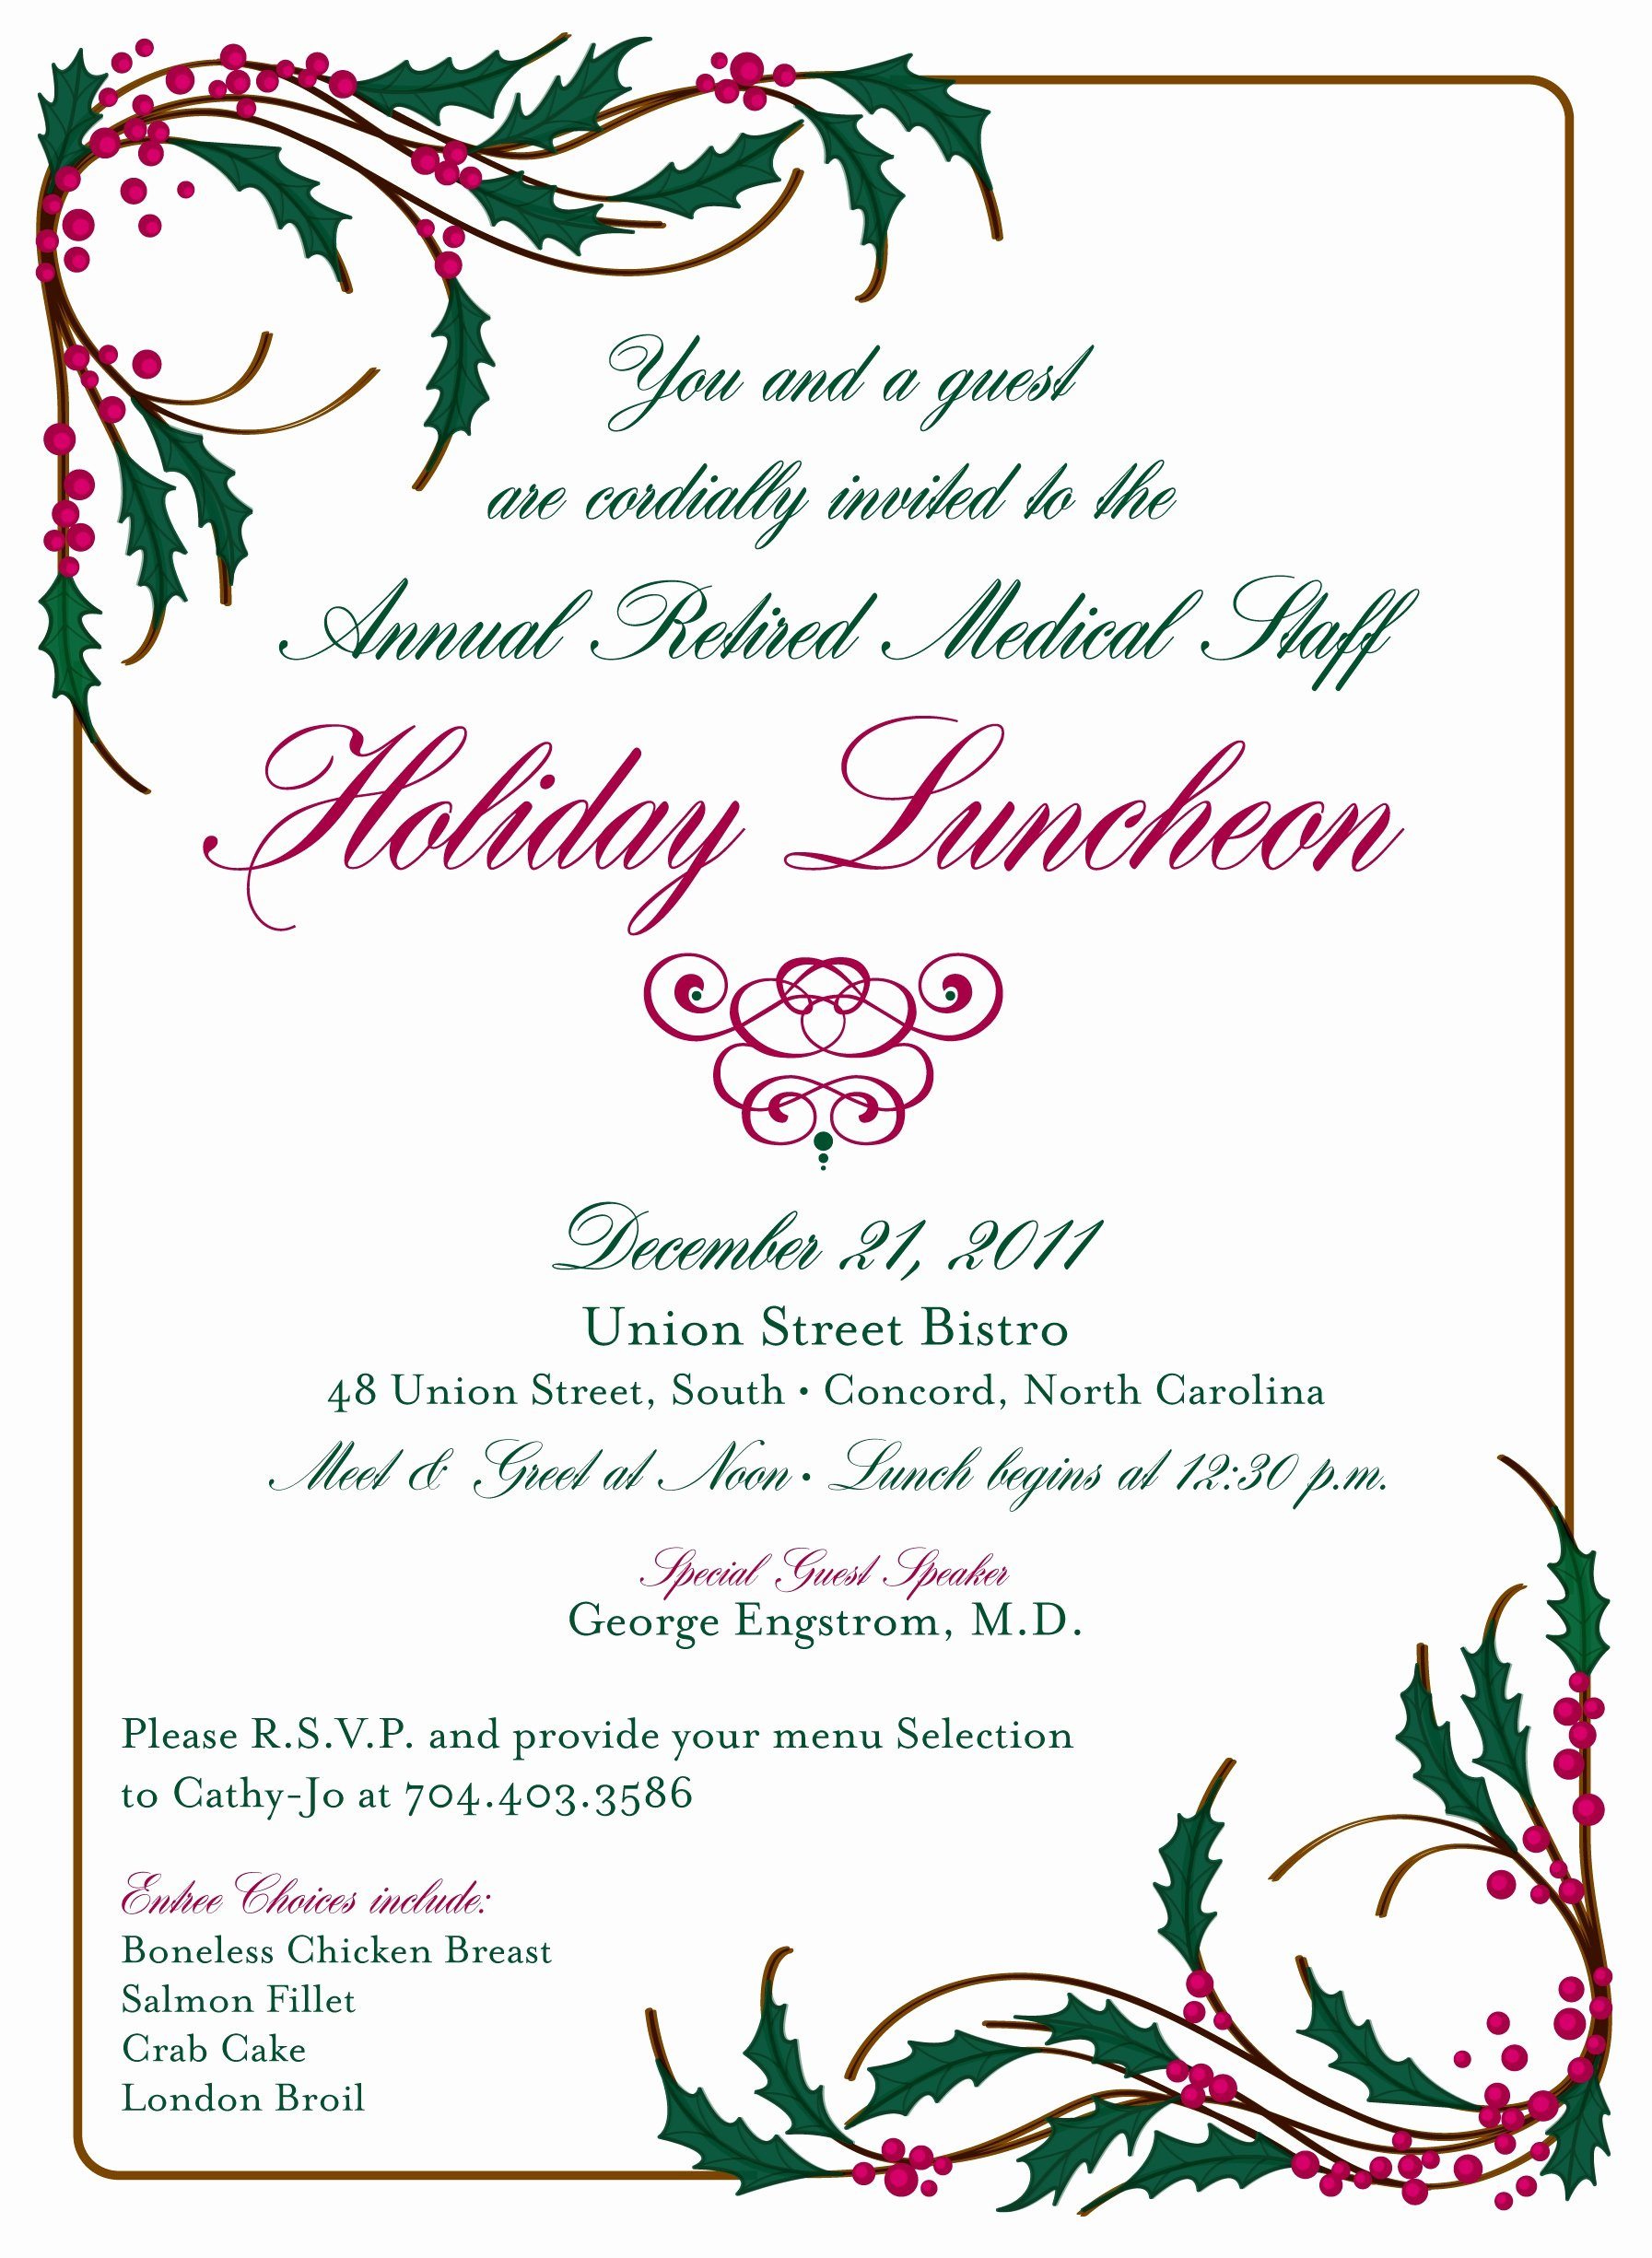 Sarah Ritter Cmc northeast 2011 Holiday Luncheon Invitation